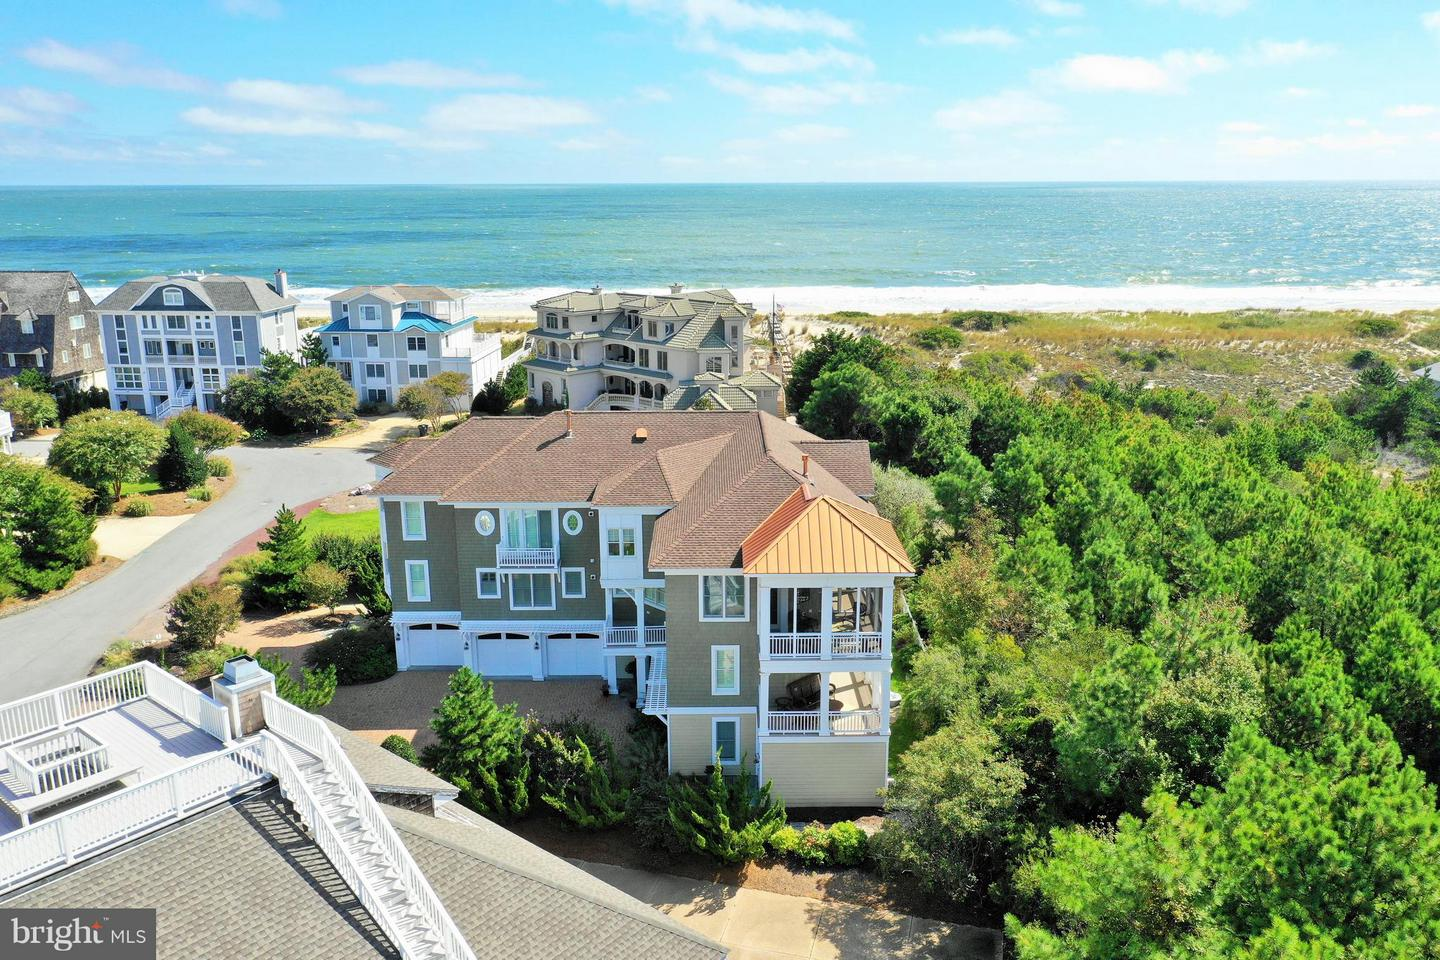 1002293530-300720129963-2018-09-25-15-08-25 31 Hall Ave | Rehoboth Beach, De Real Estate For Sale | MLS# 1002293530  - Suzanne Macnab